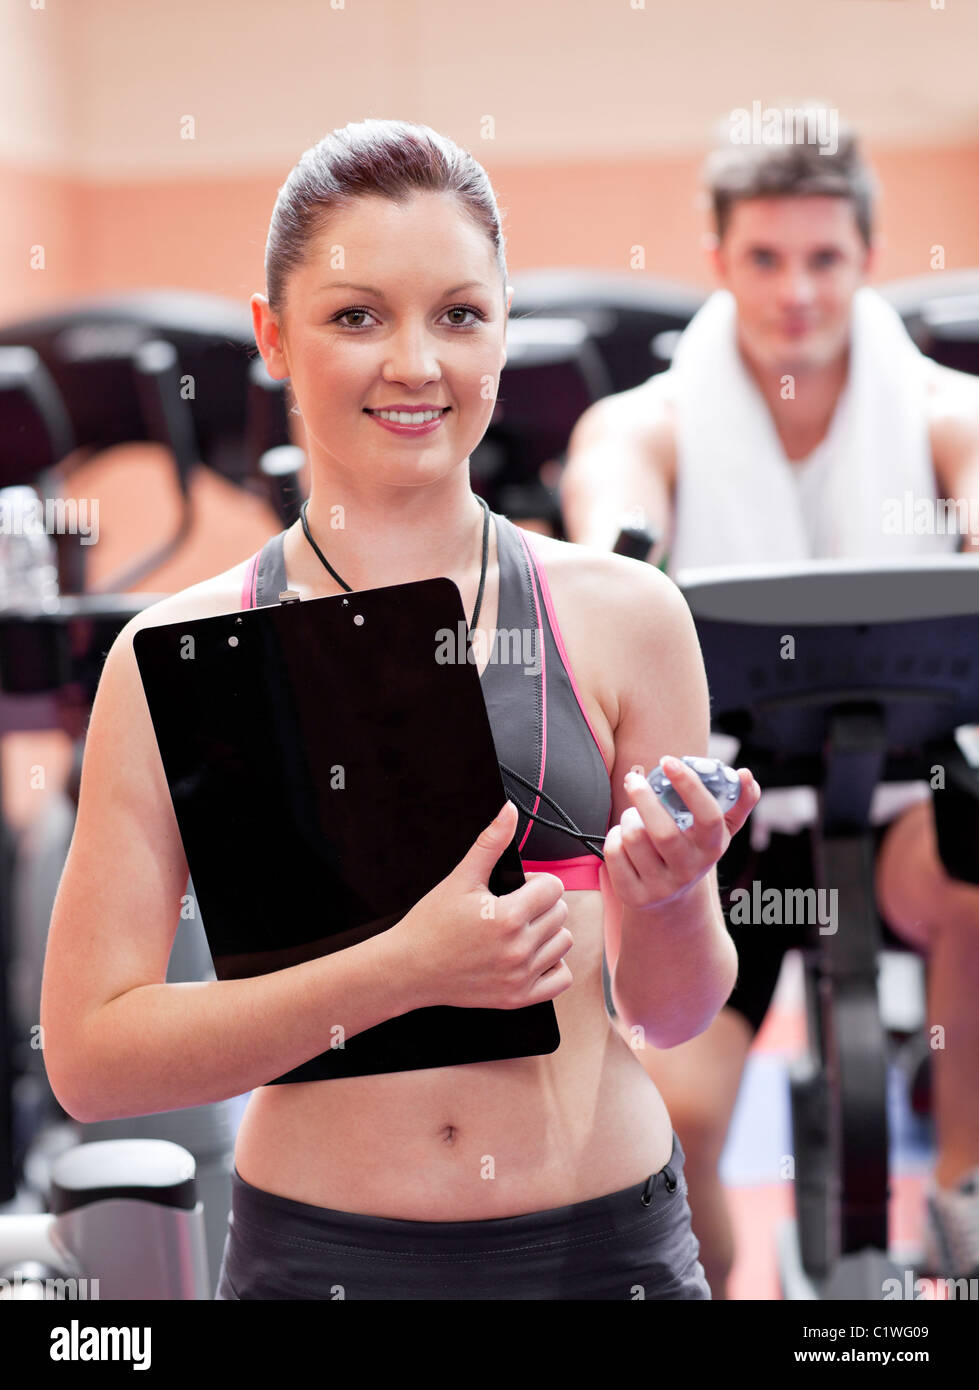 Happy coach measuring time with a chronometer while man is doing exercises - Stock Image